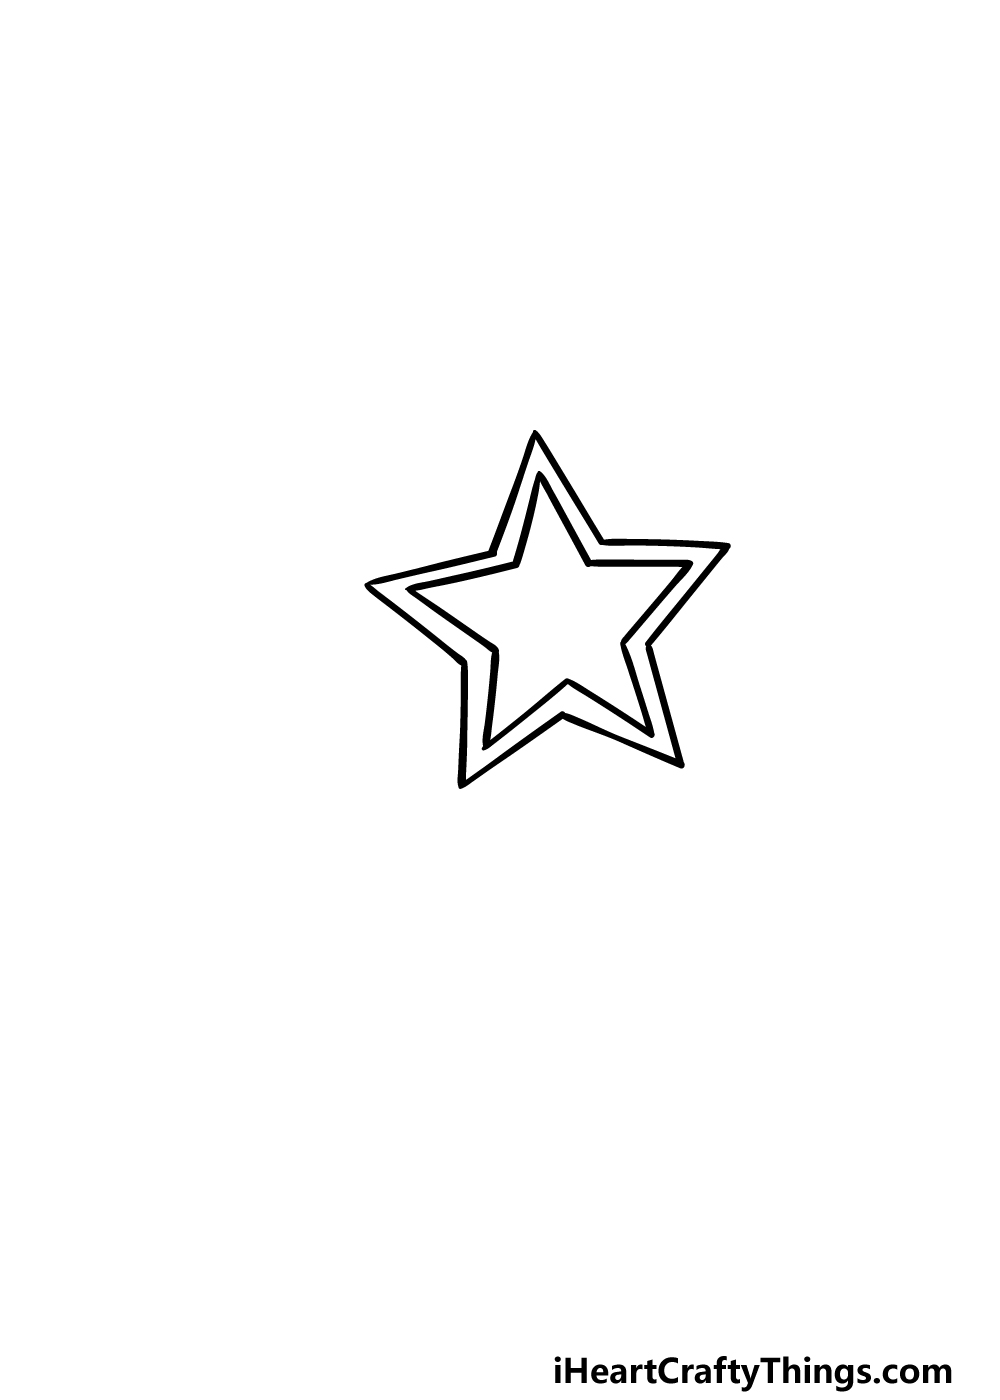 drawing a Shooting Star step 3